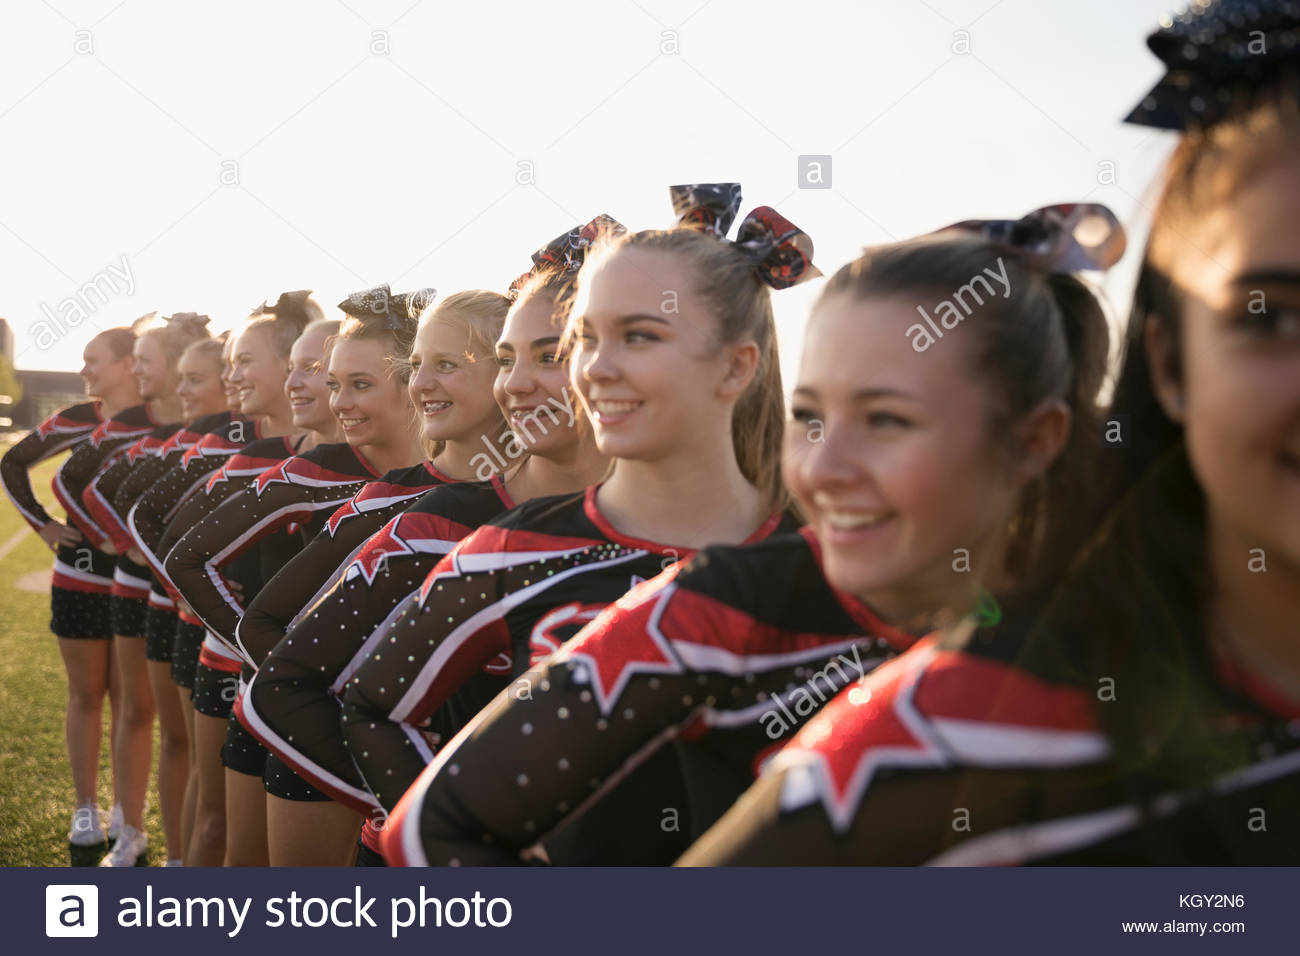 Teenage girl high school cheerleading team poised, smiling and standing in a row looking away - Stock Image